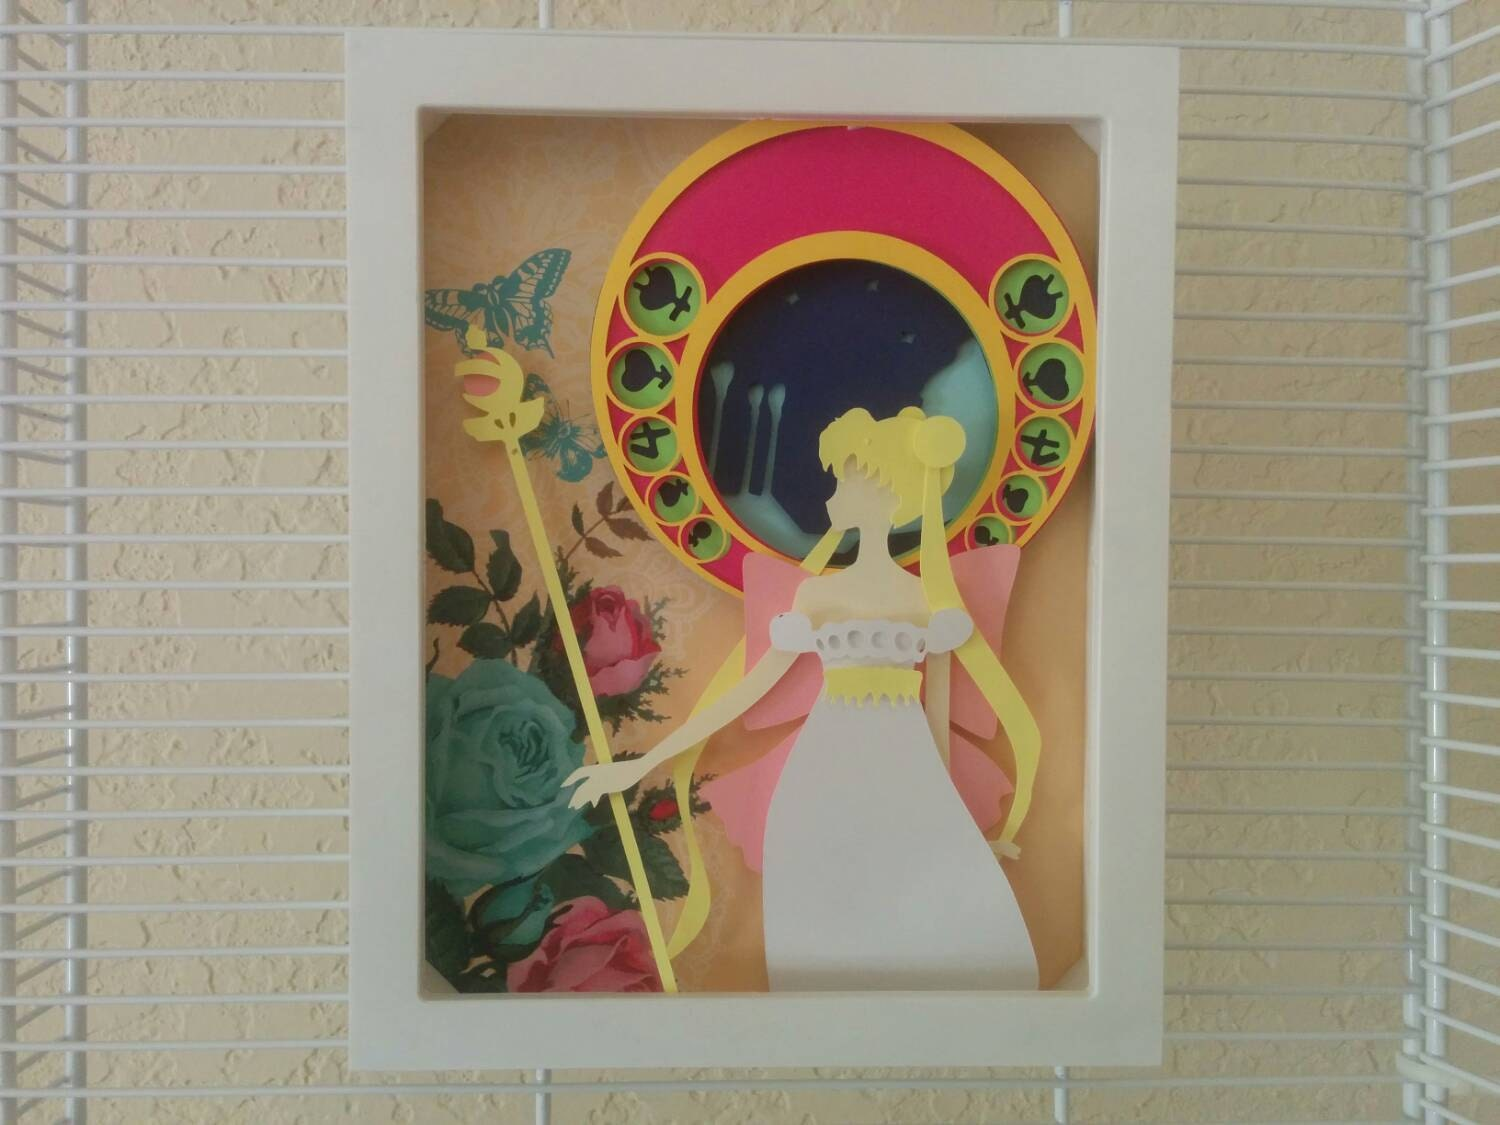 sailor moon serenity layered paper cut art piece